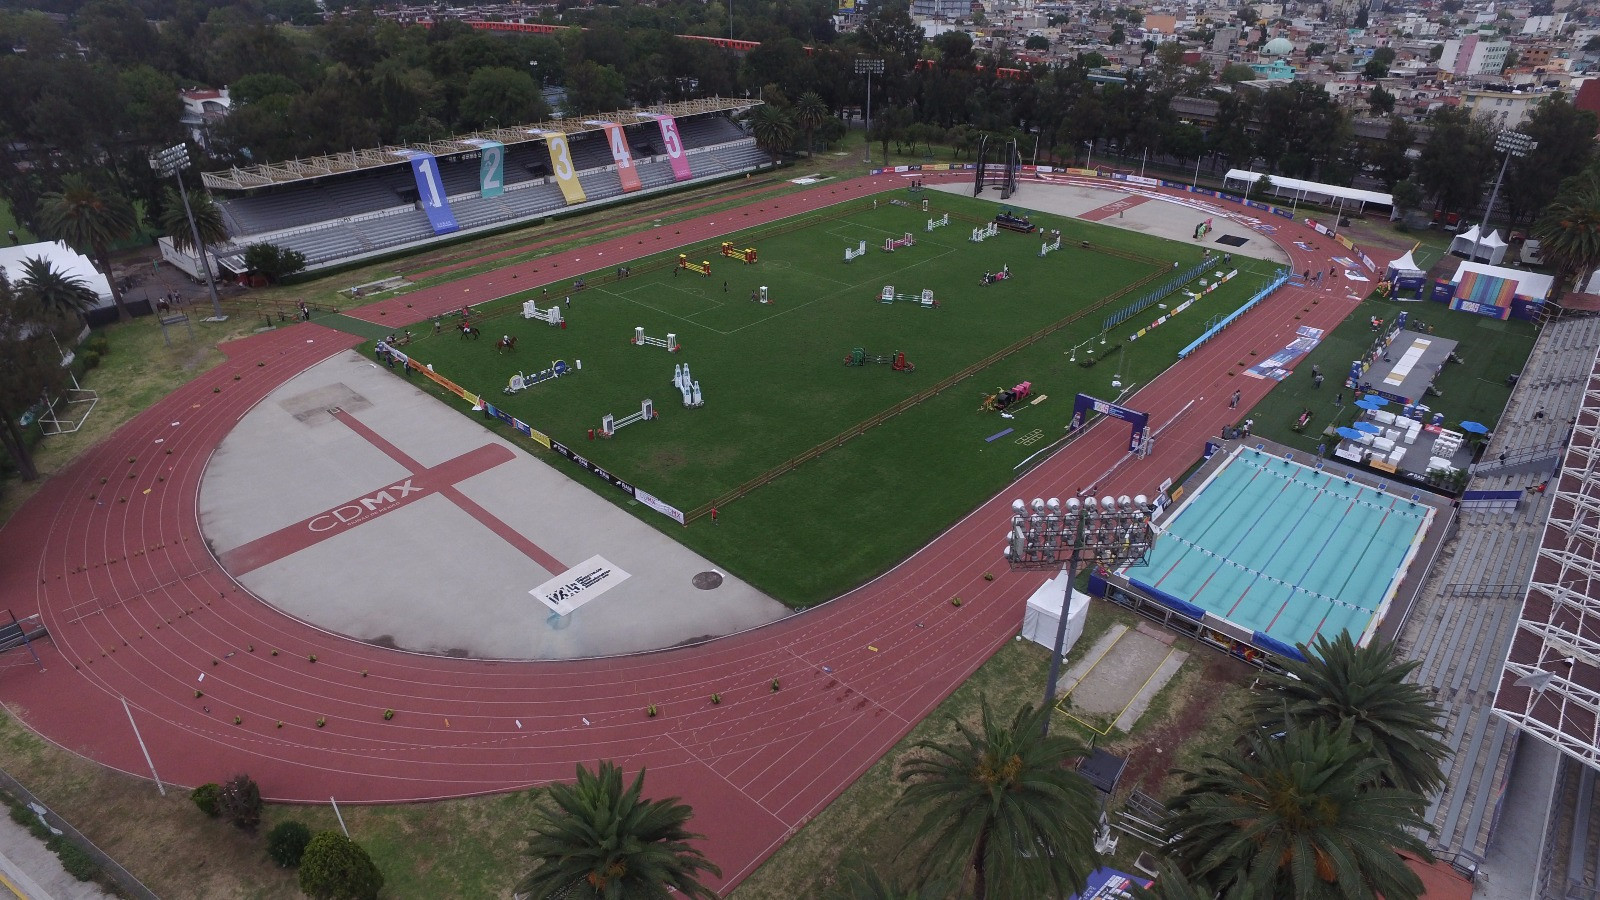 The Mexico City stadium contains all the necessary features to stage all five events of the modern pentathlon ©UIPM